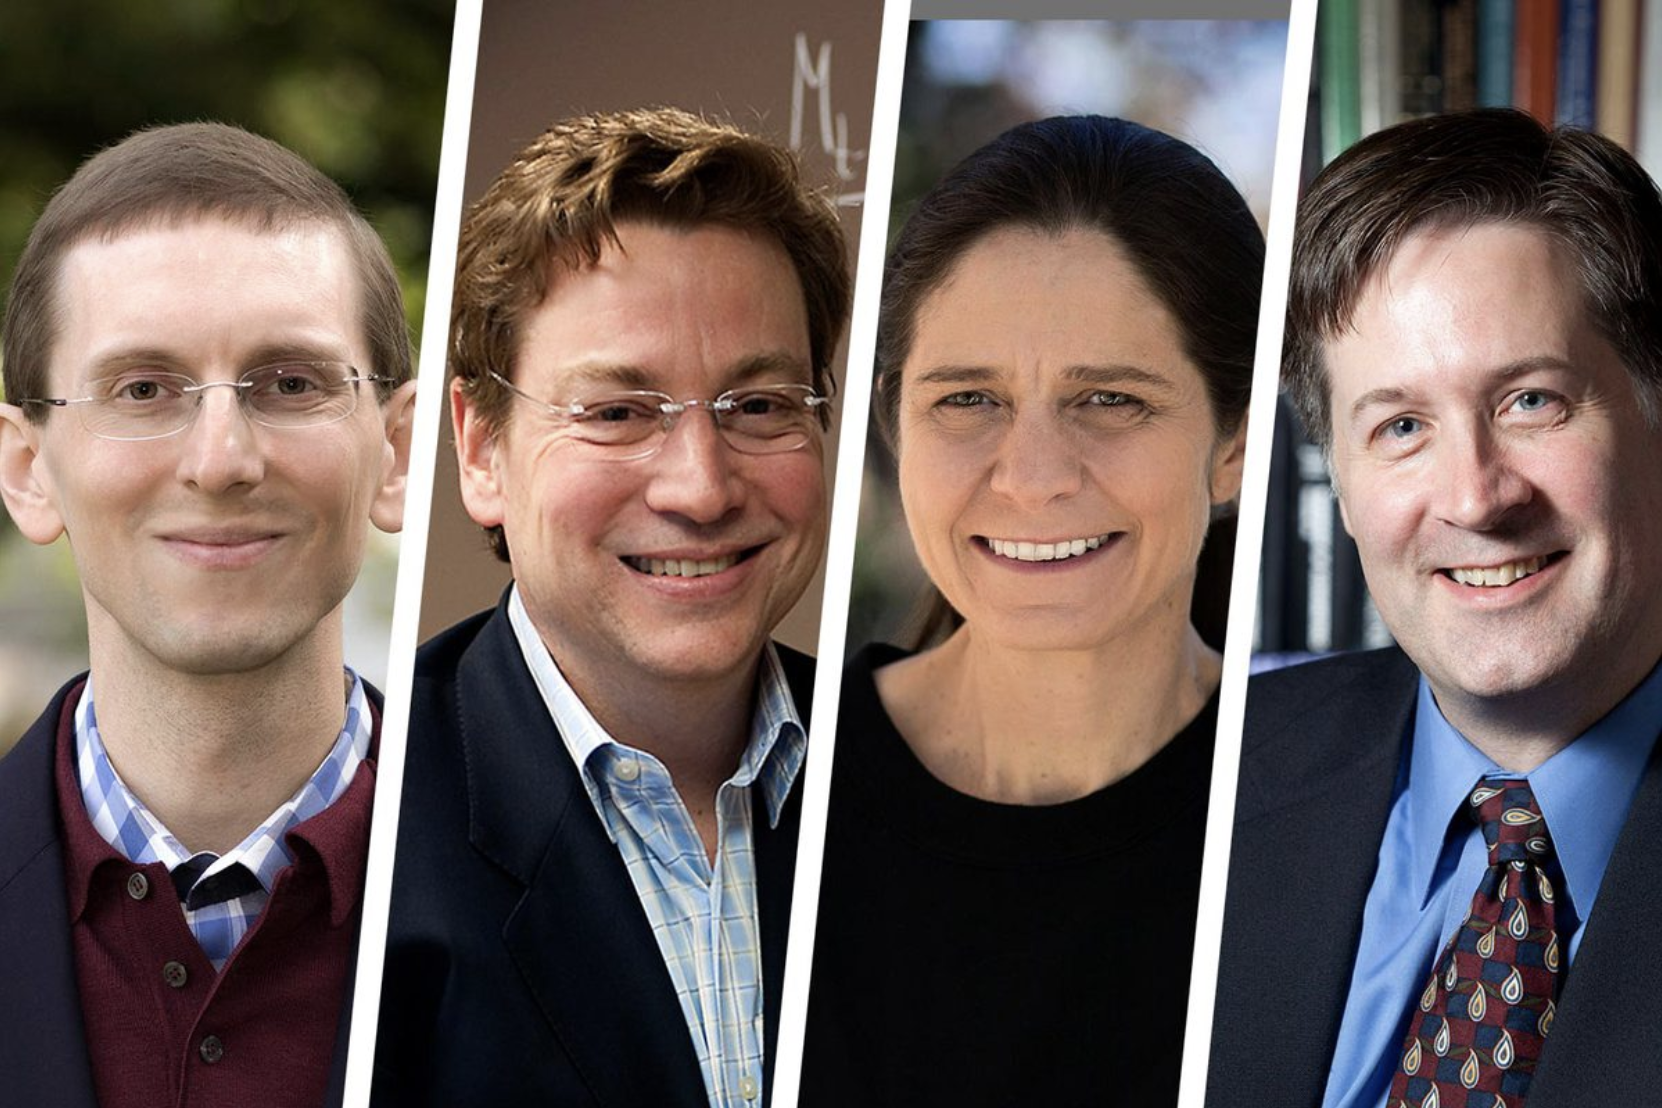 UVA economists Anton Korinek, Eric Leeper, Sarah Turner and David Bradford discussed the health and economic implications of COVID-19 in a virtual forum last week.